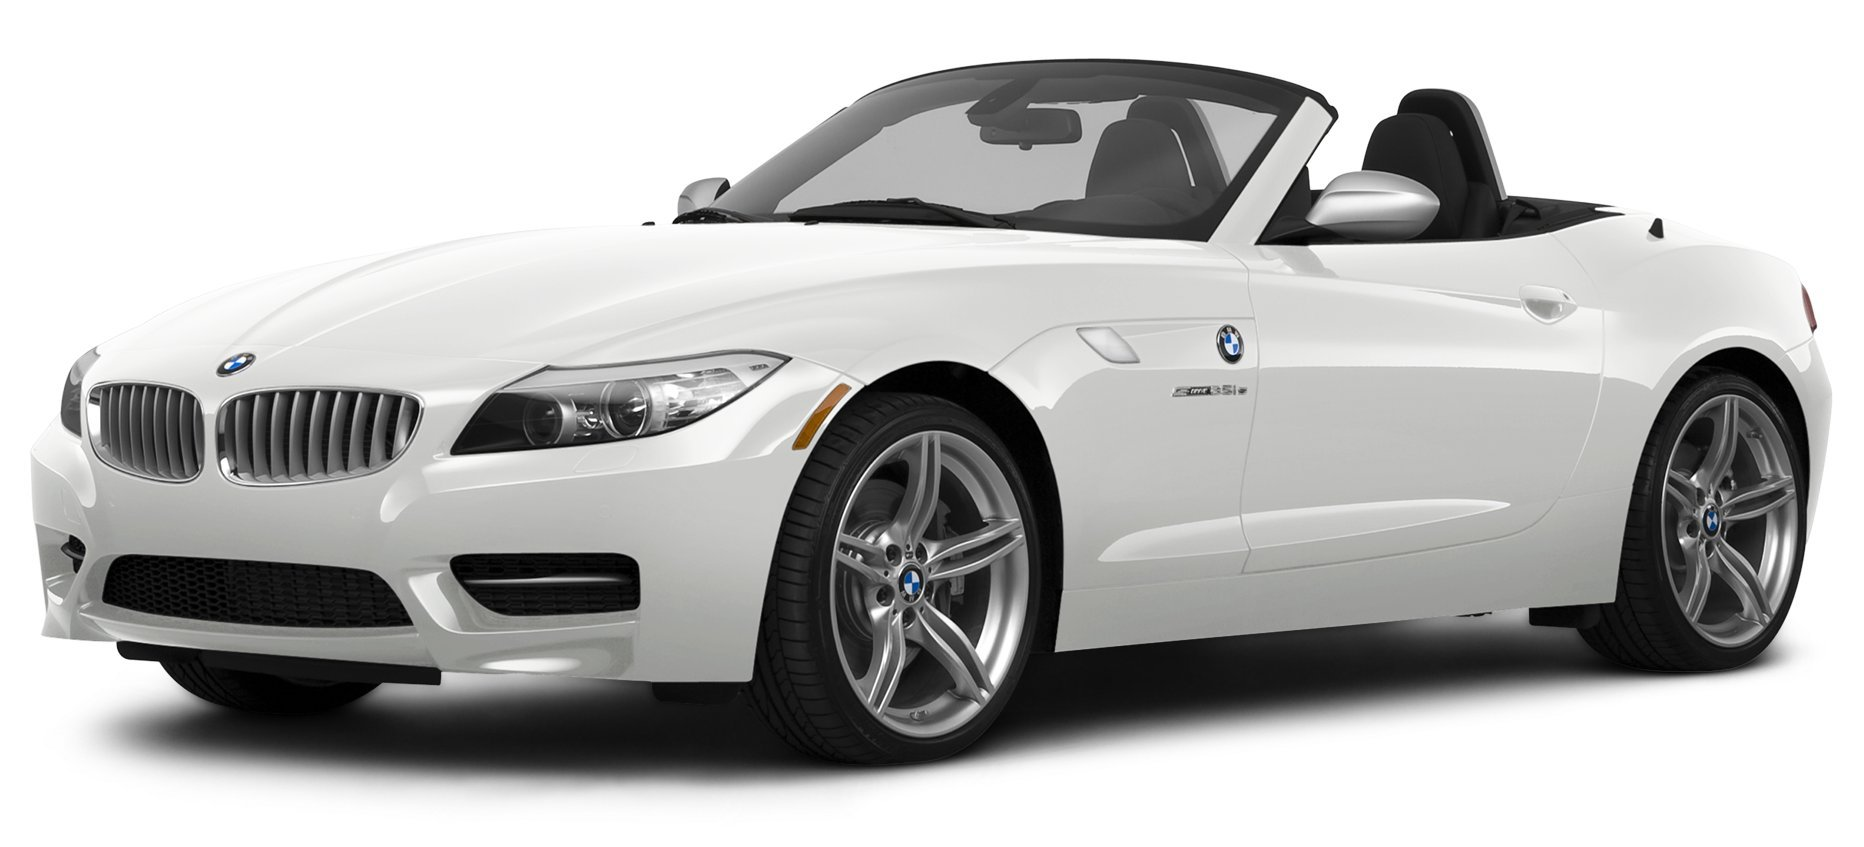 Amazon.com: 2011 BMW Z4 Reviews, Images, and Specs: Vehicles